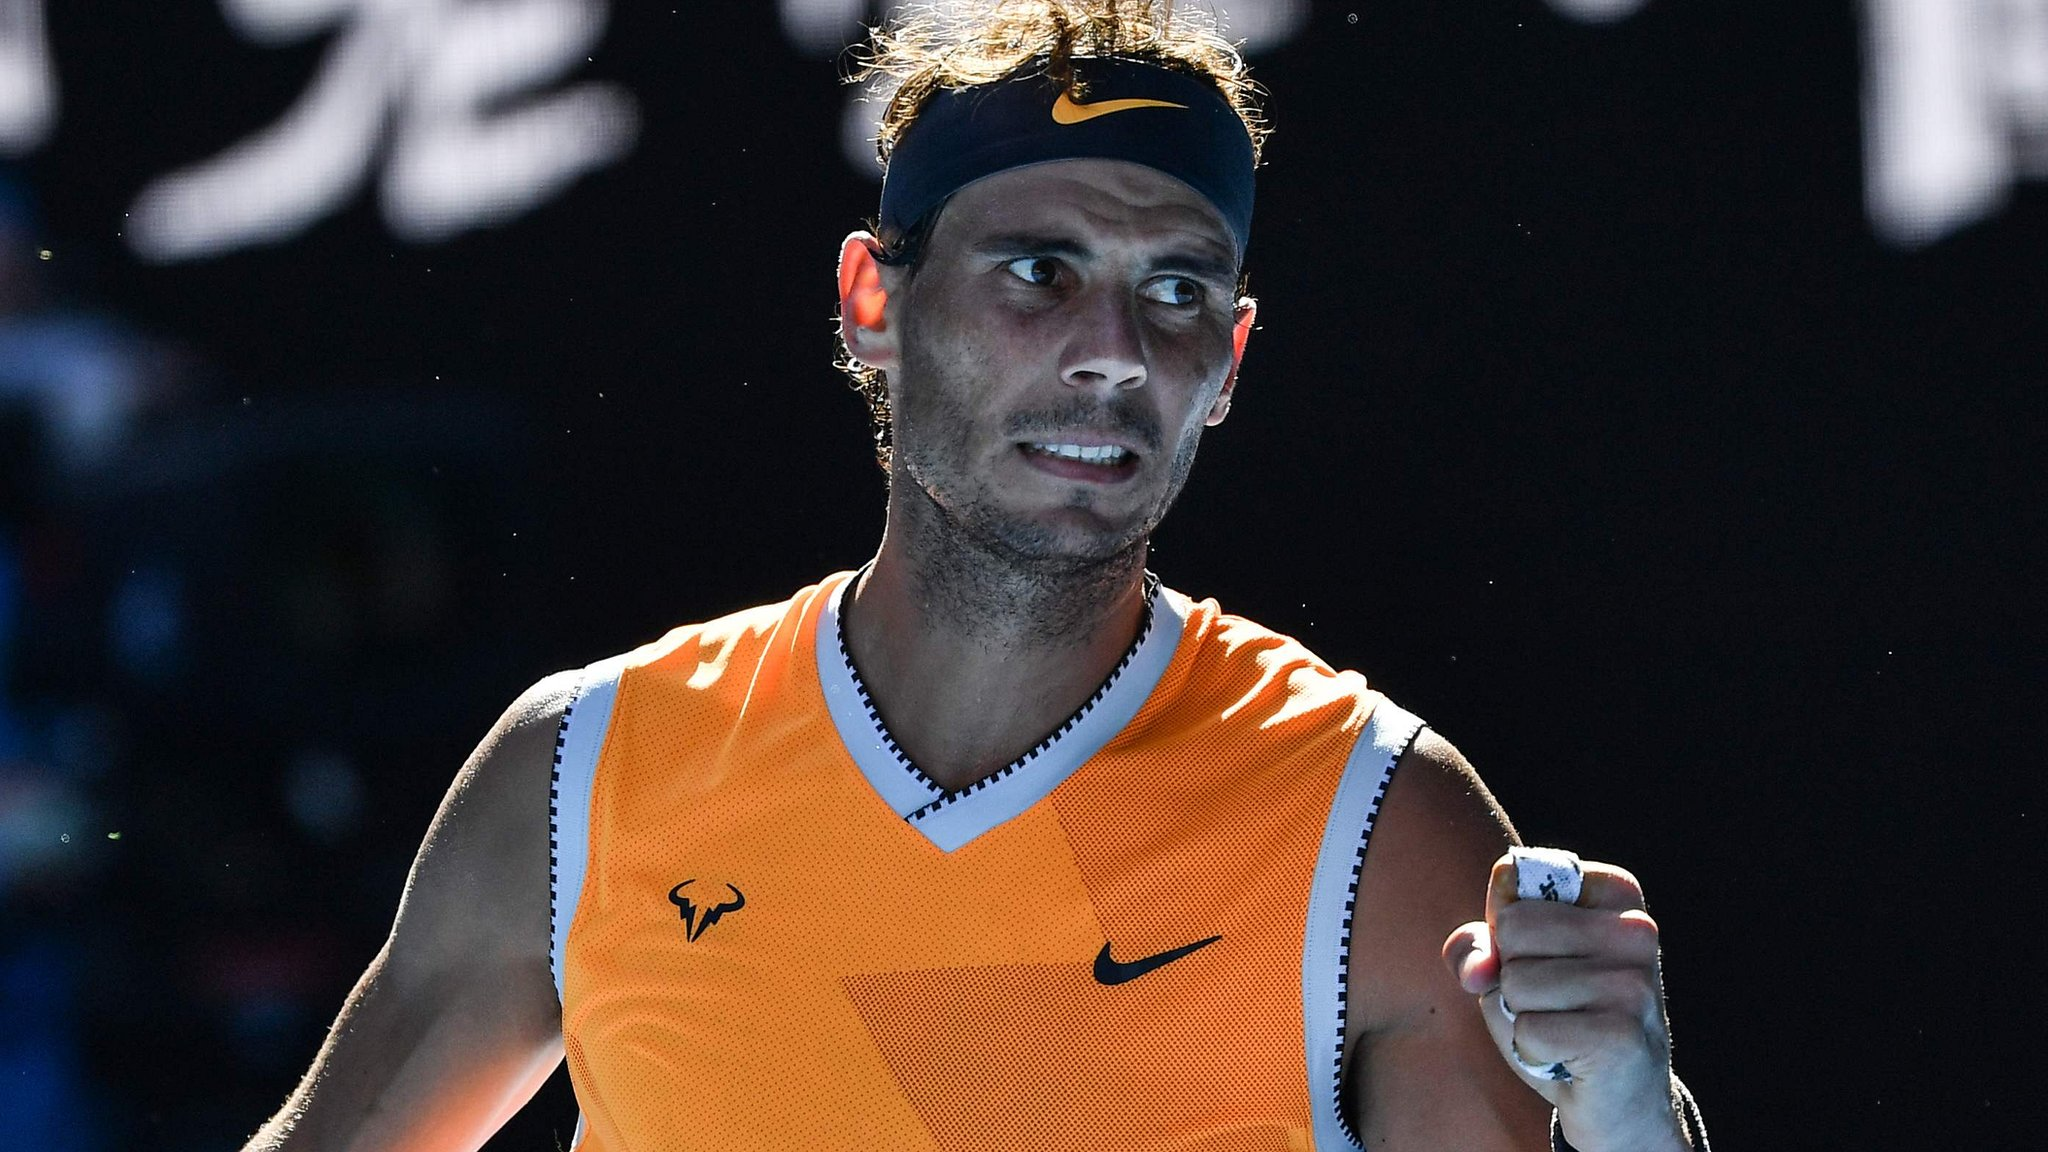 Nadal blasts past Berdych to reach last eight